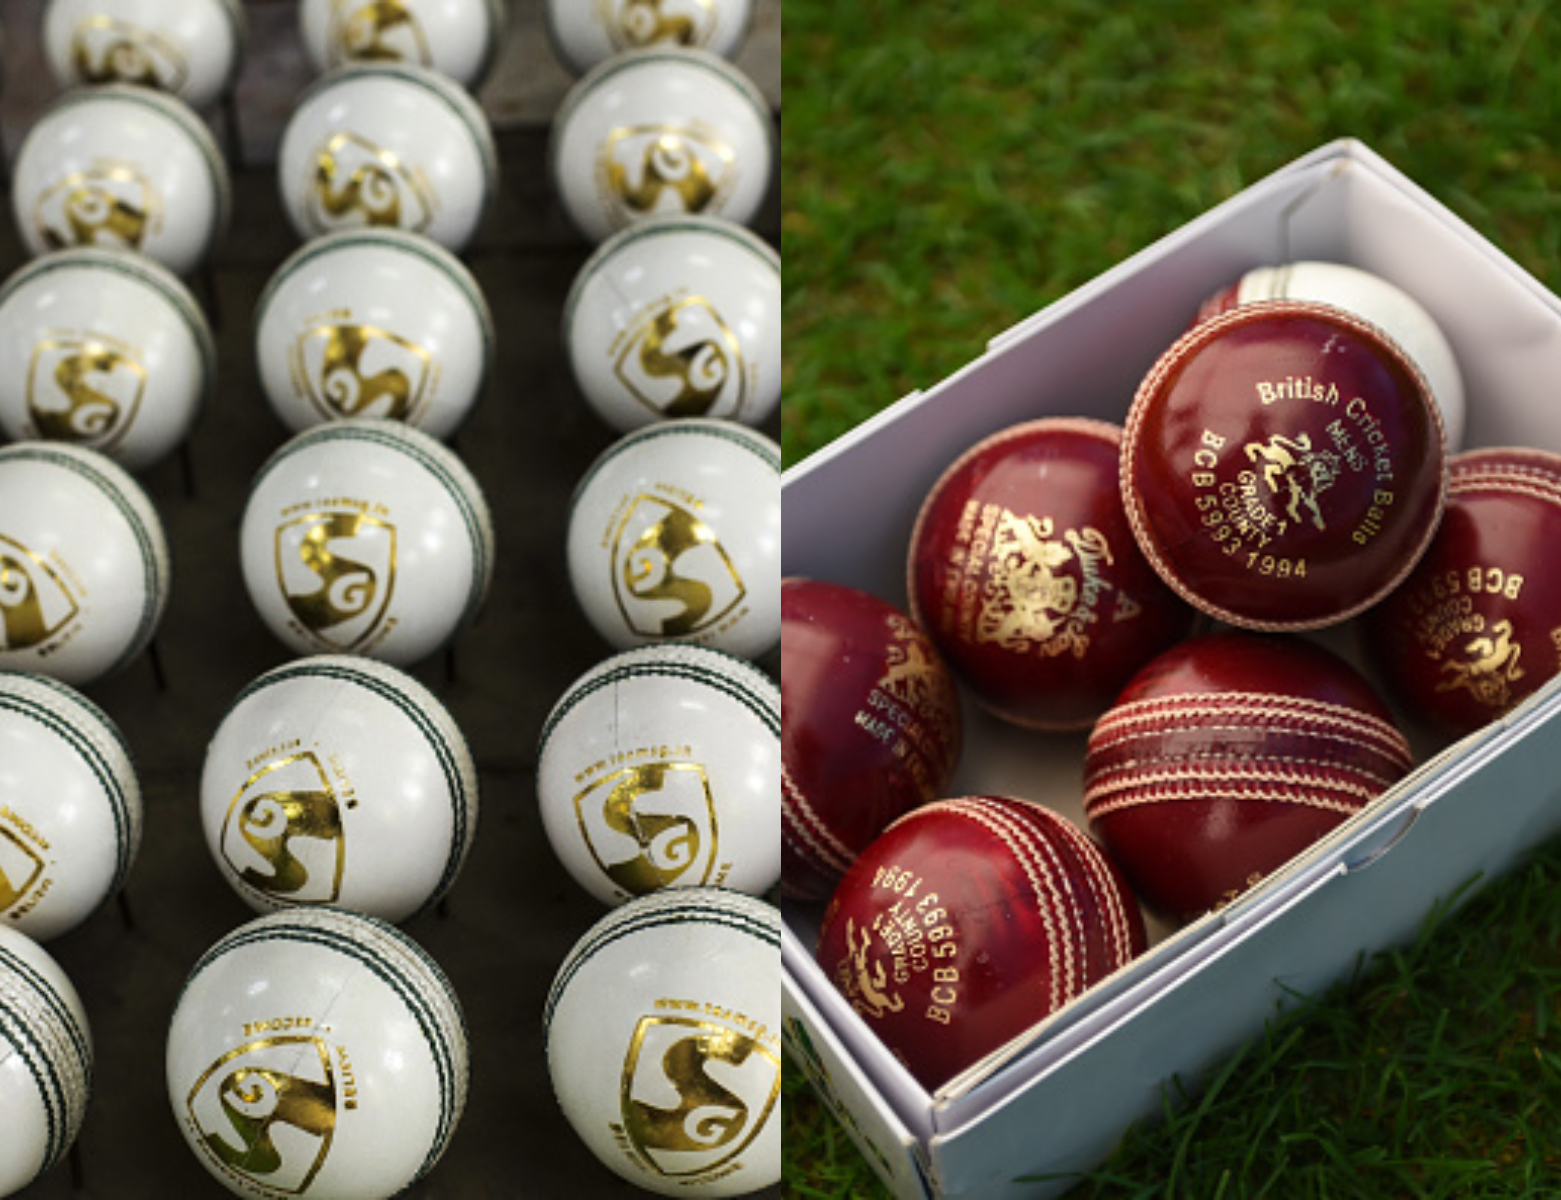 White and Red Cricket balls | Getty